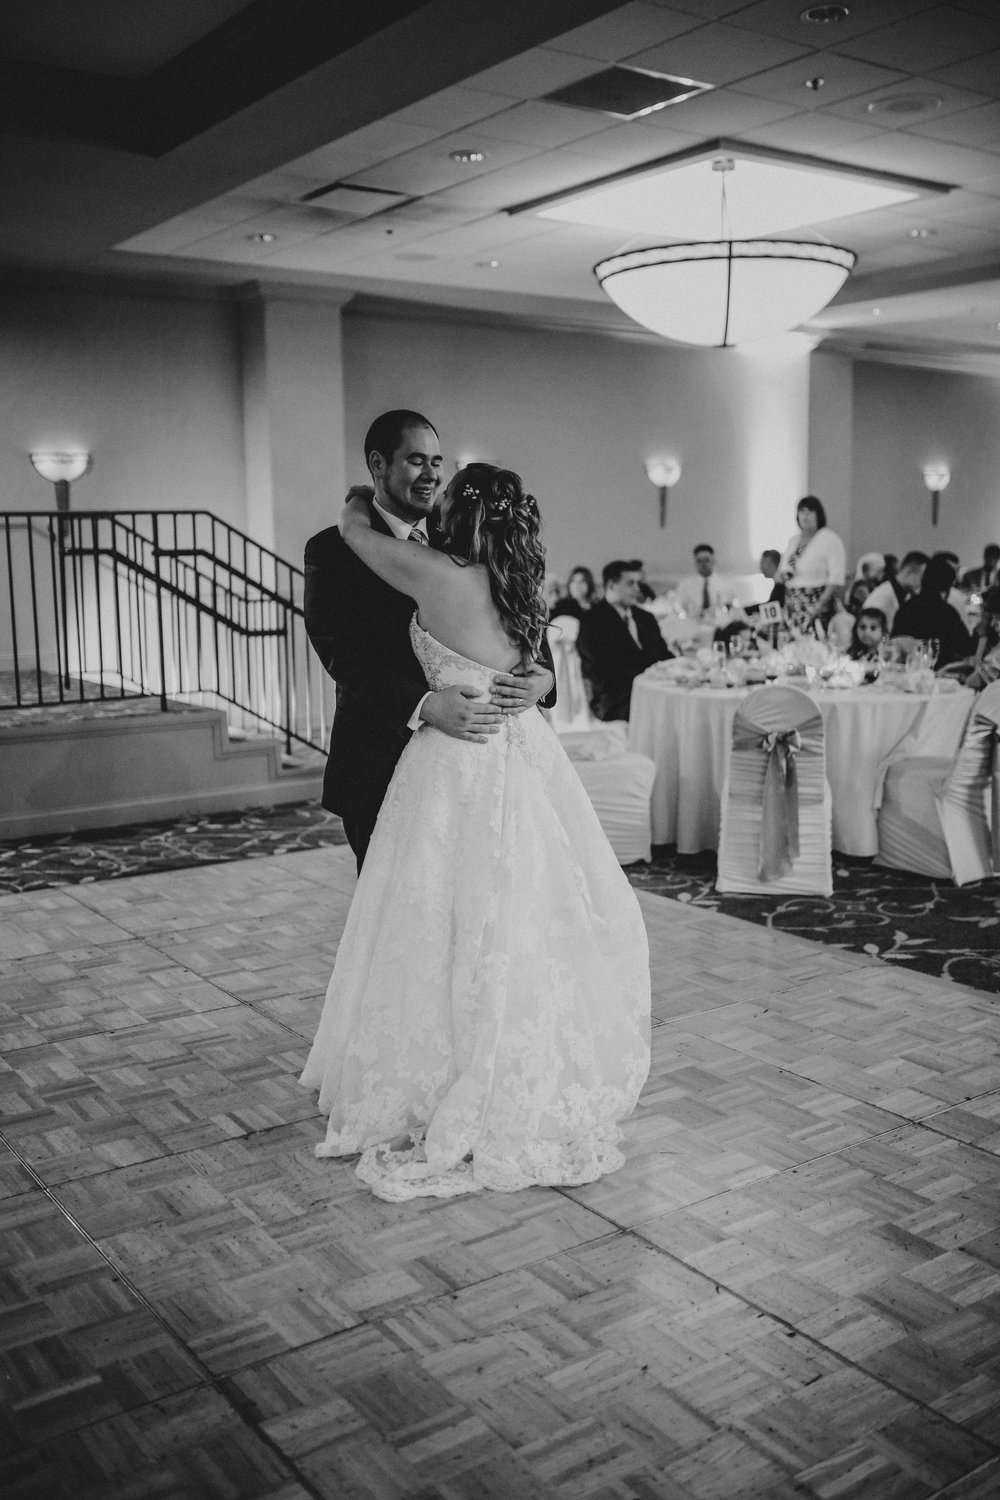 firstdance-32.jpg